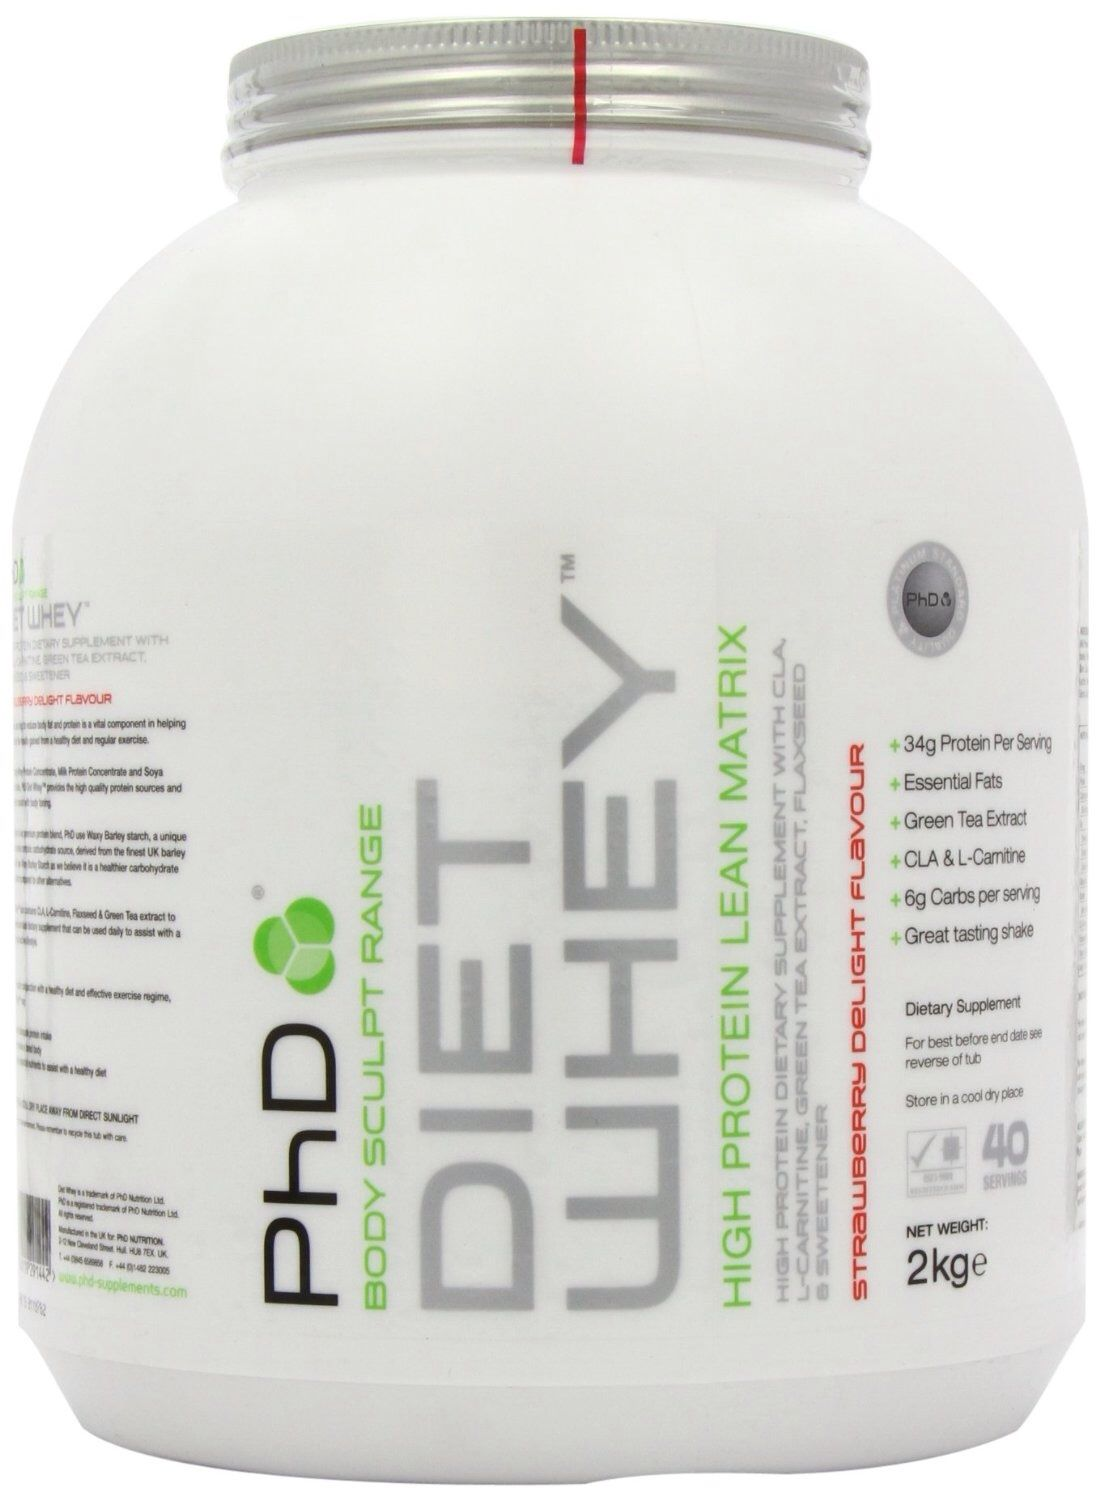 Diet Whey Protein Phd Review